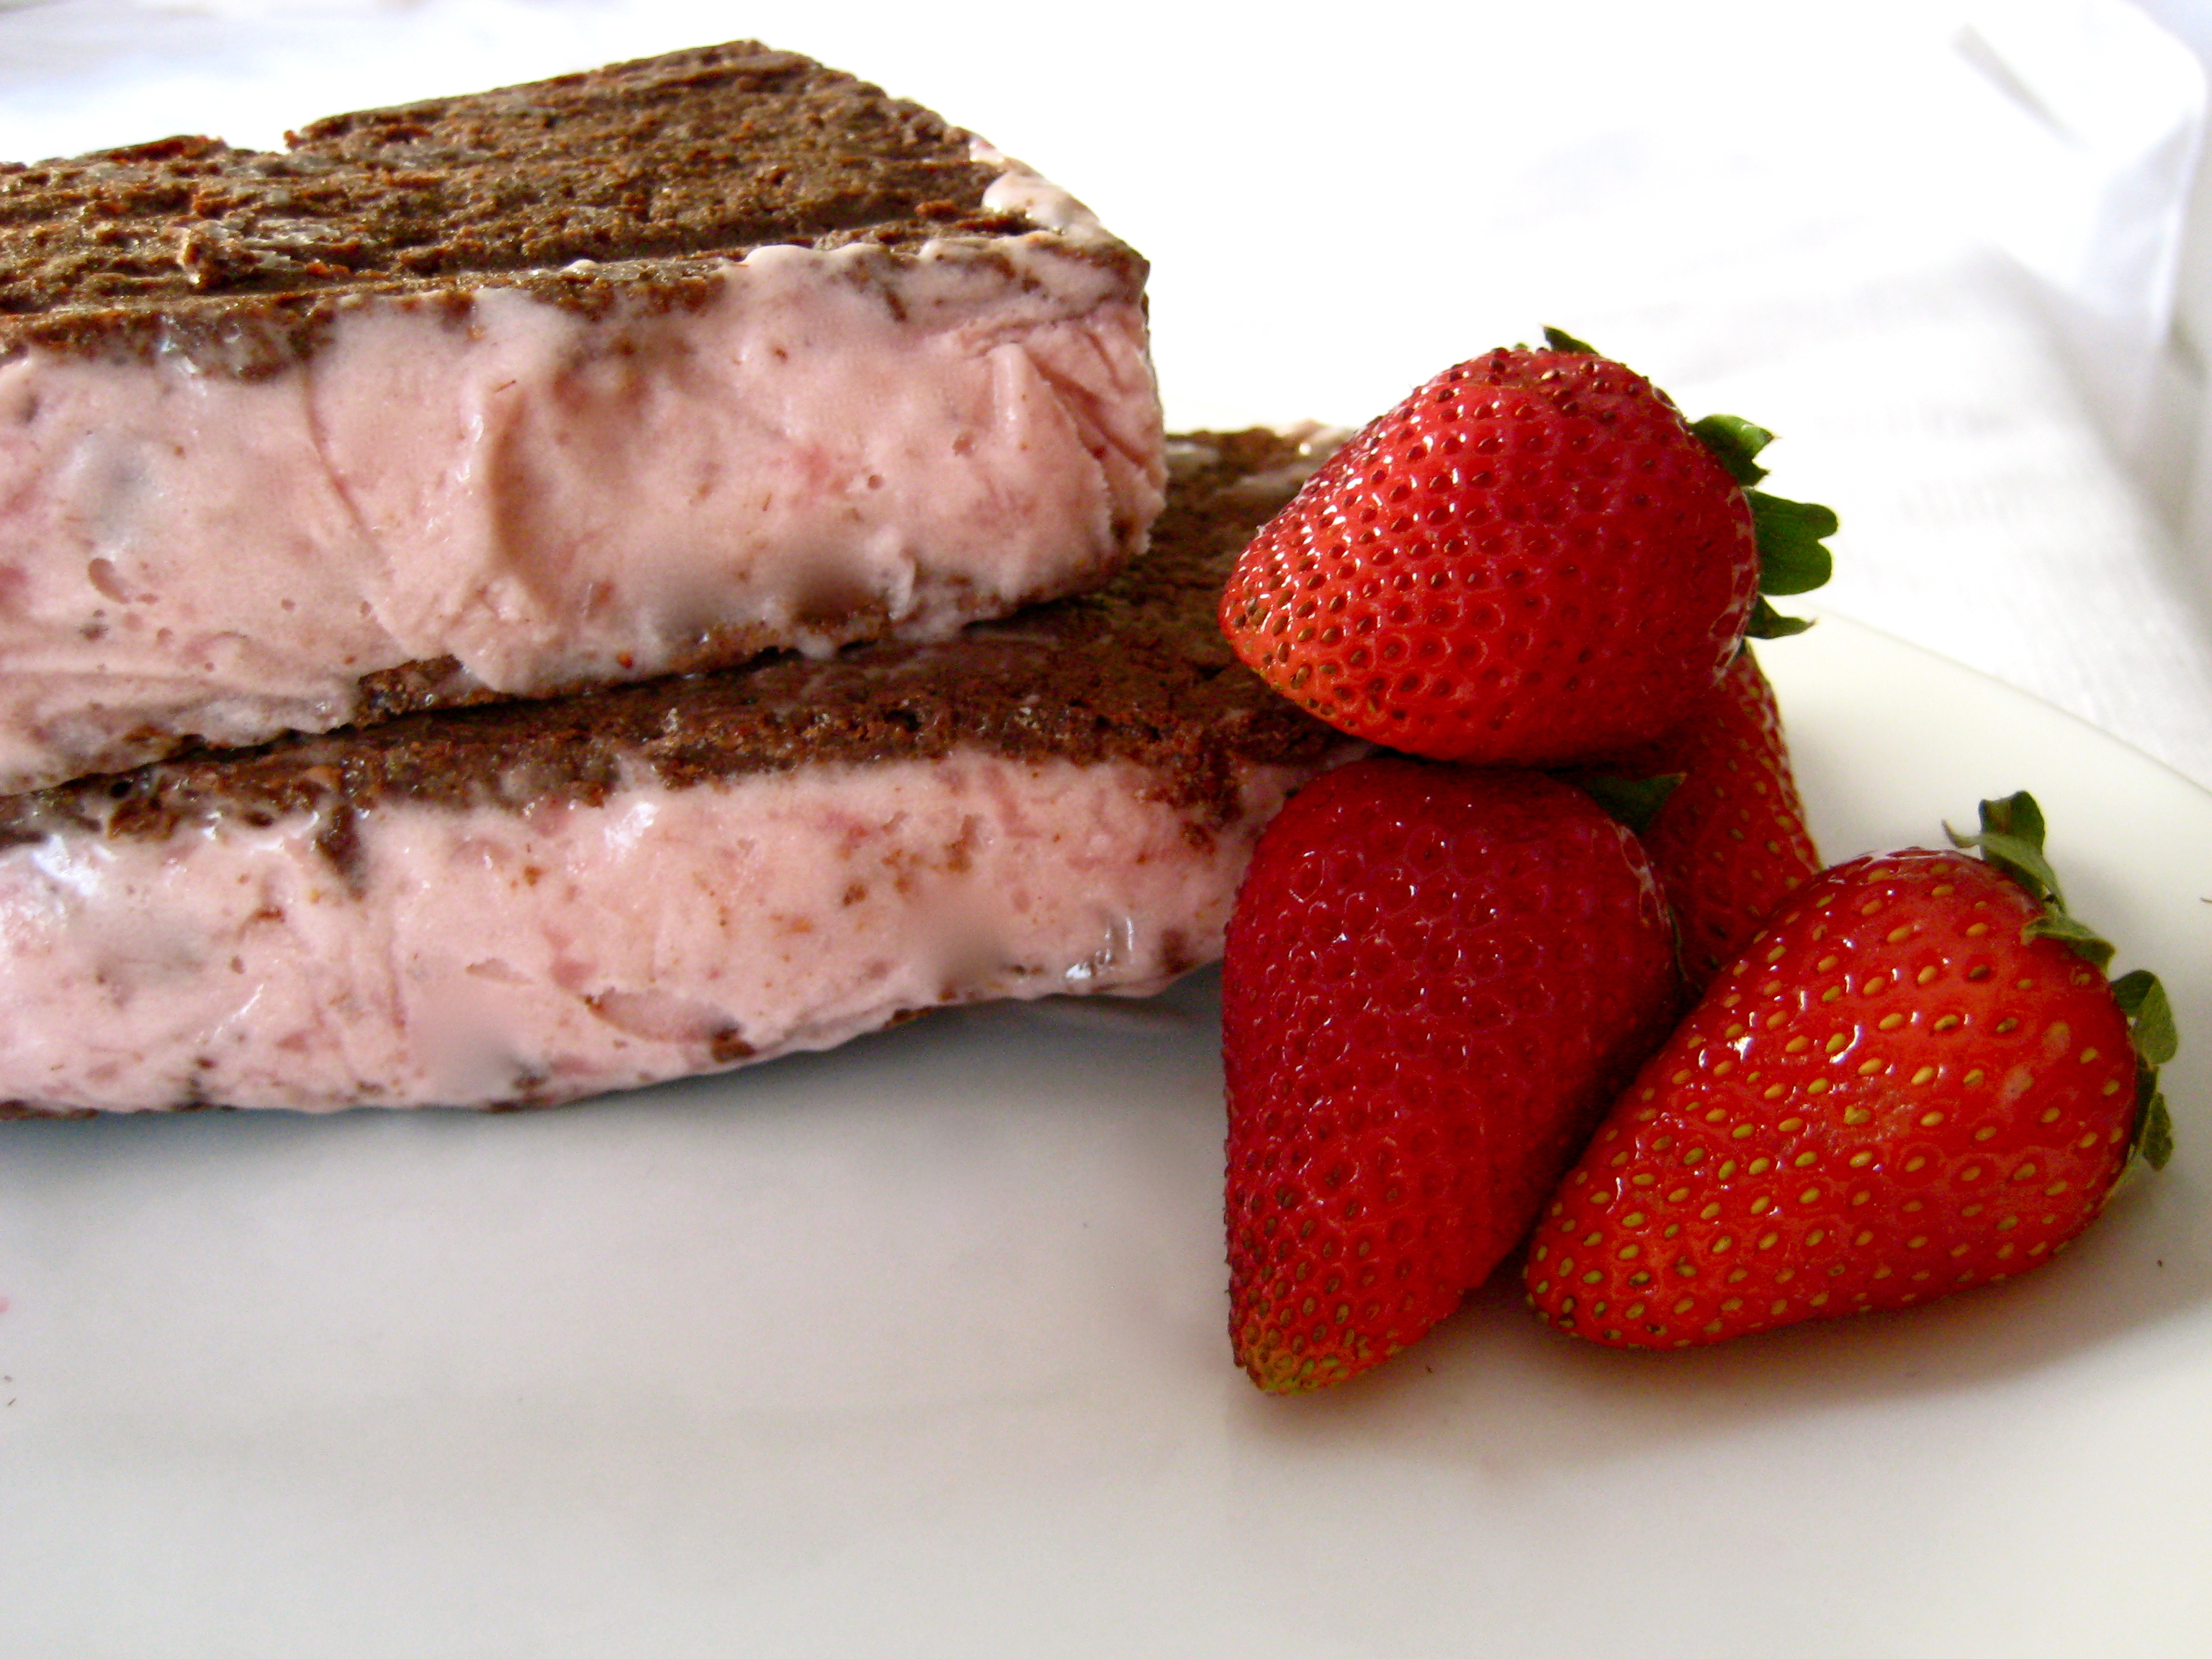 Classic Ice Cream Sandwiches with Vegan Strawberry Ice Cream